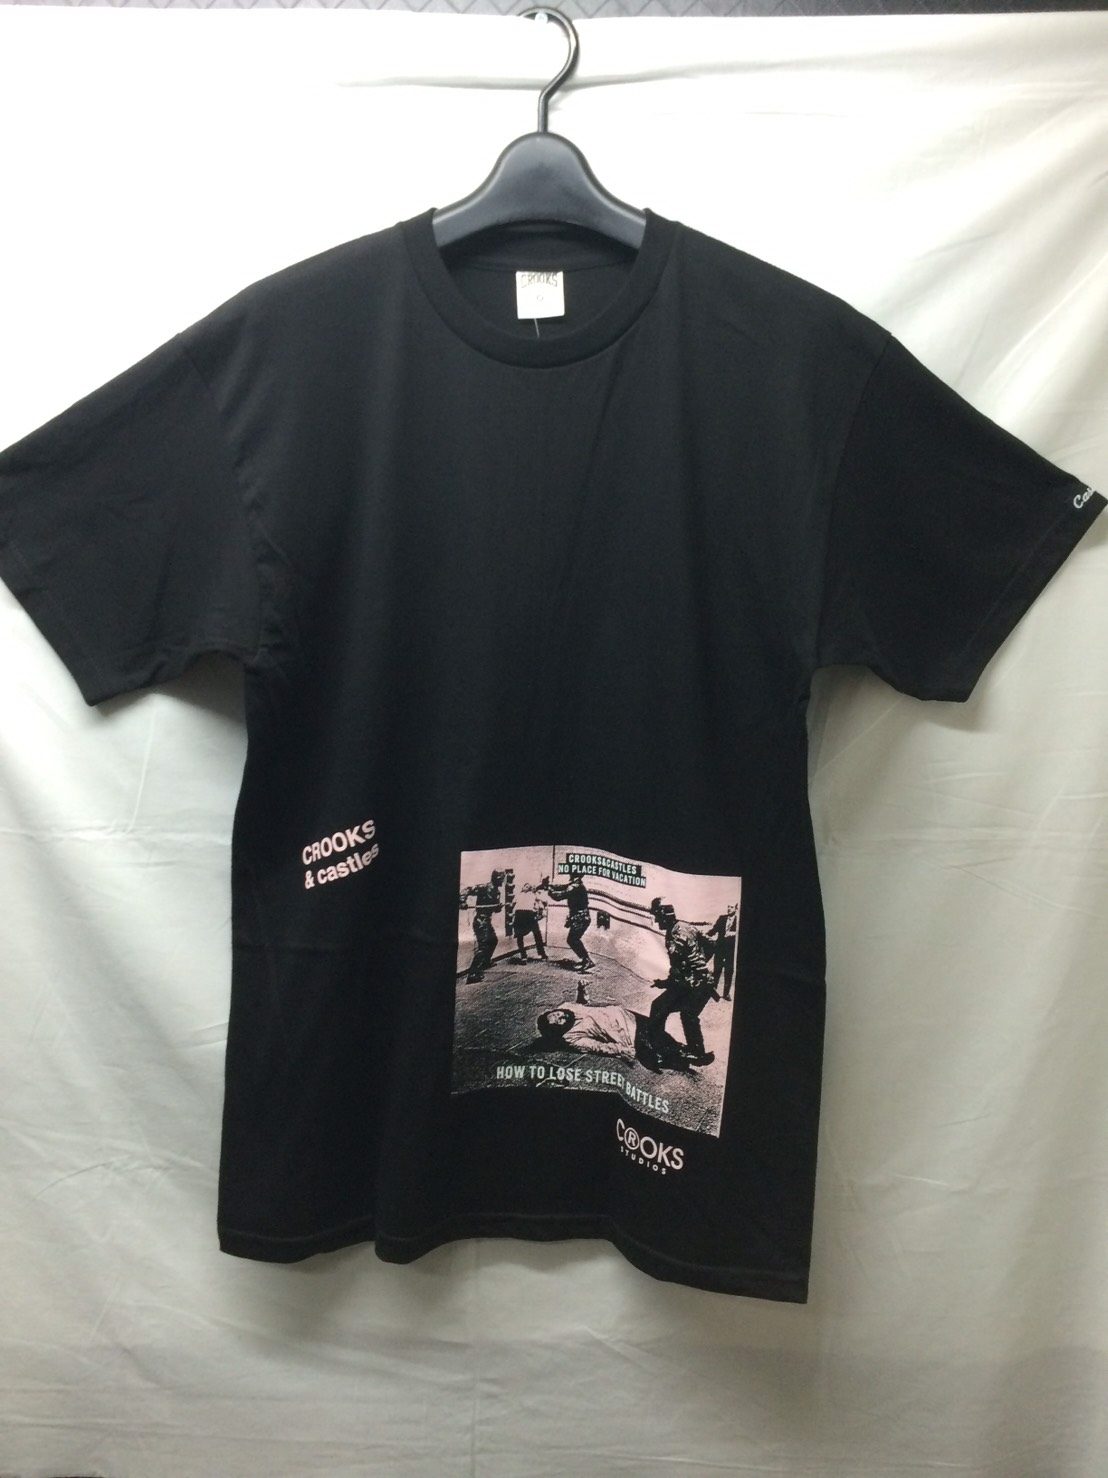 crooks_t-shirt01